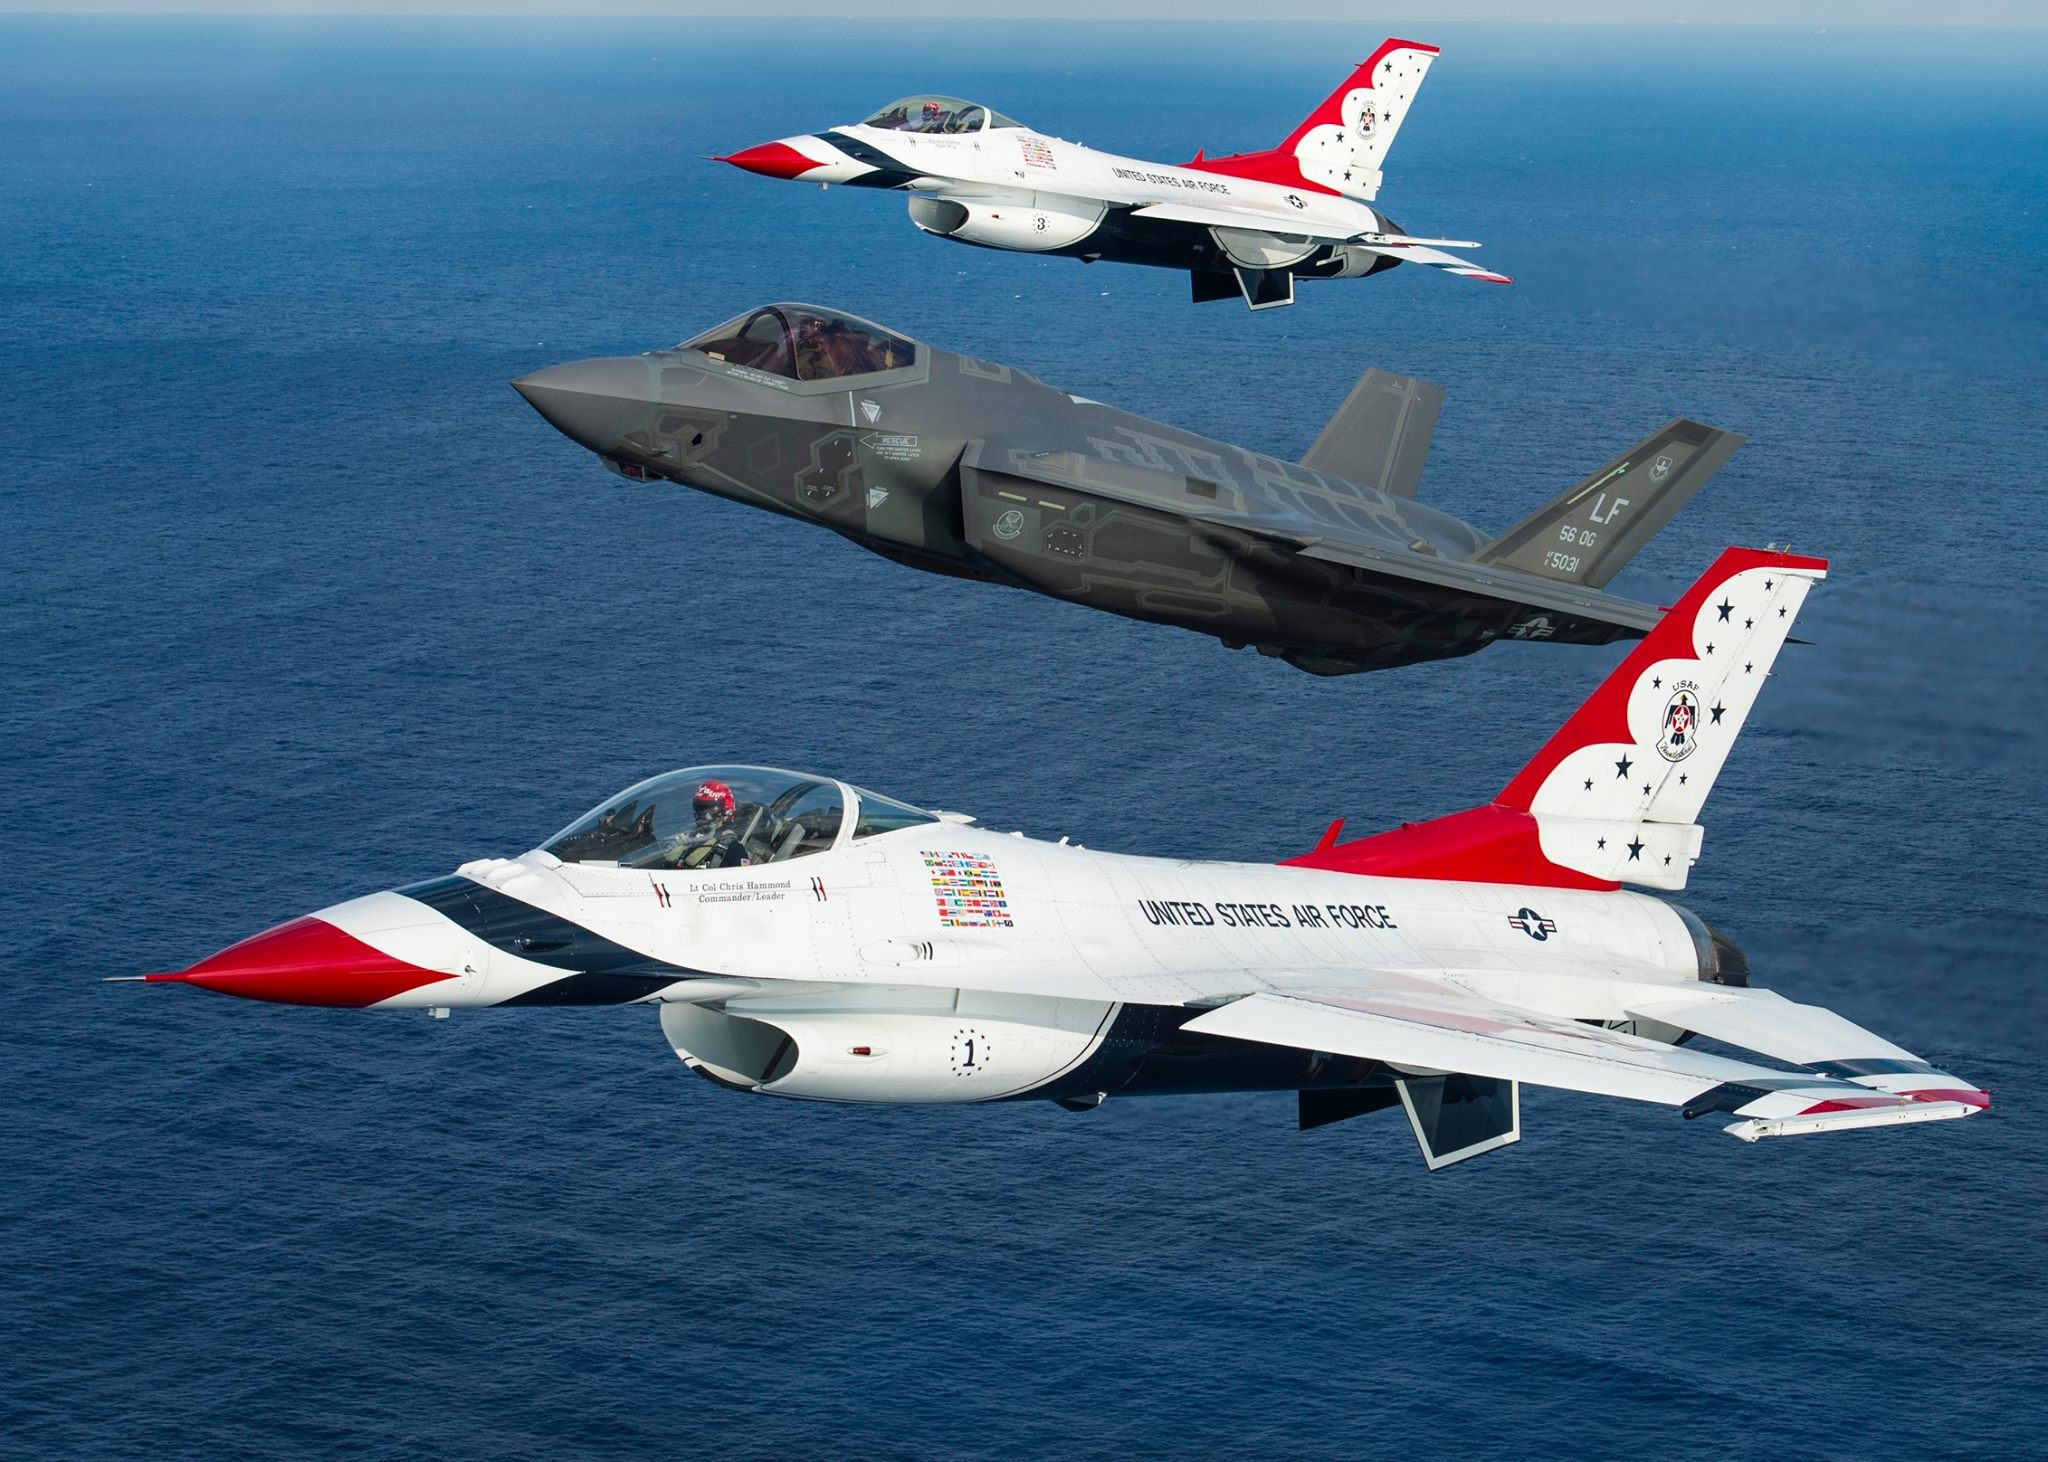 Thunderbirds and F-35A Lightning II in formation flight. Photo USAF